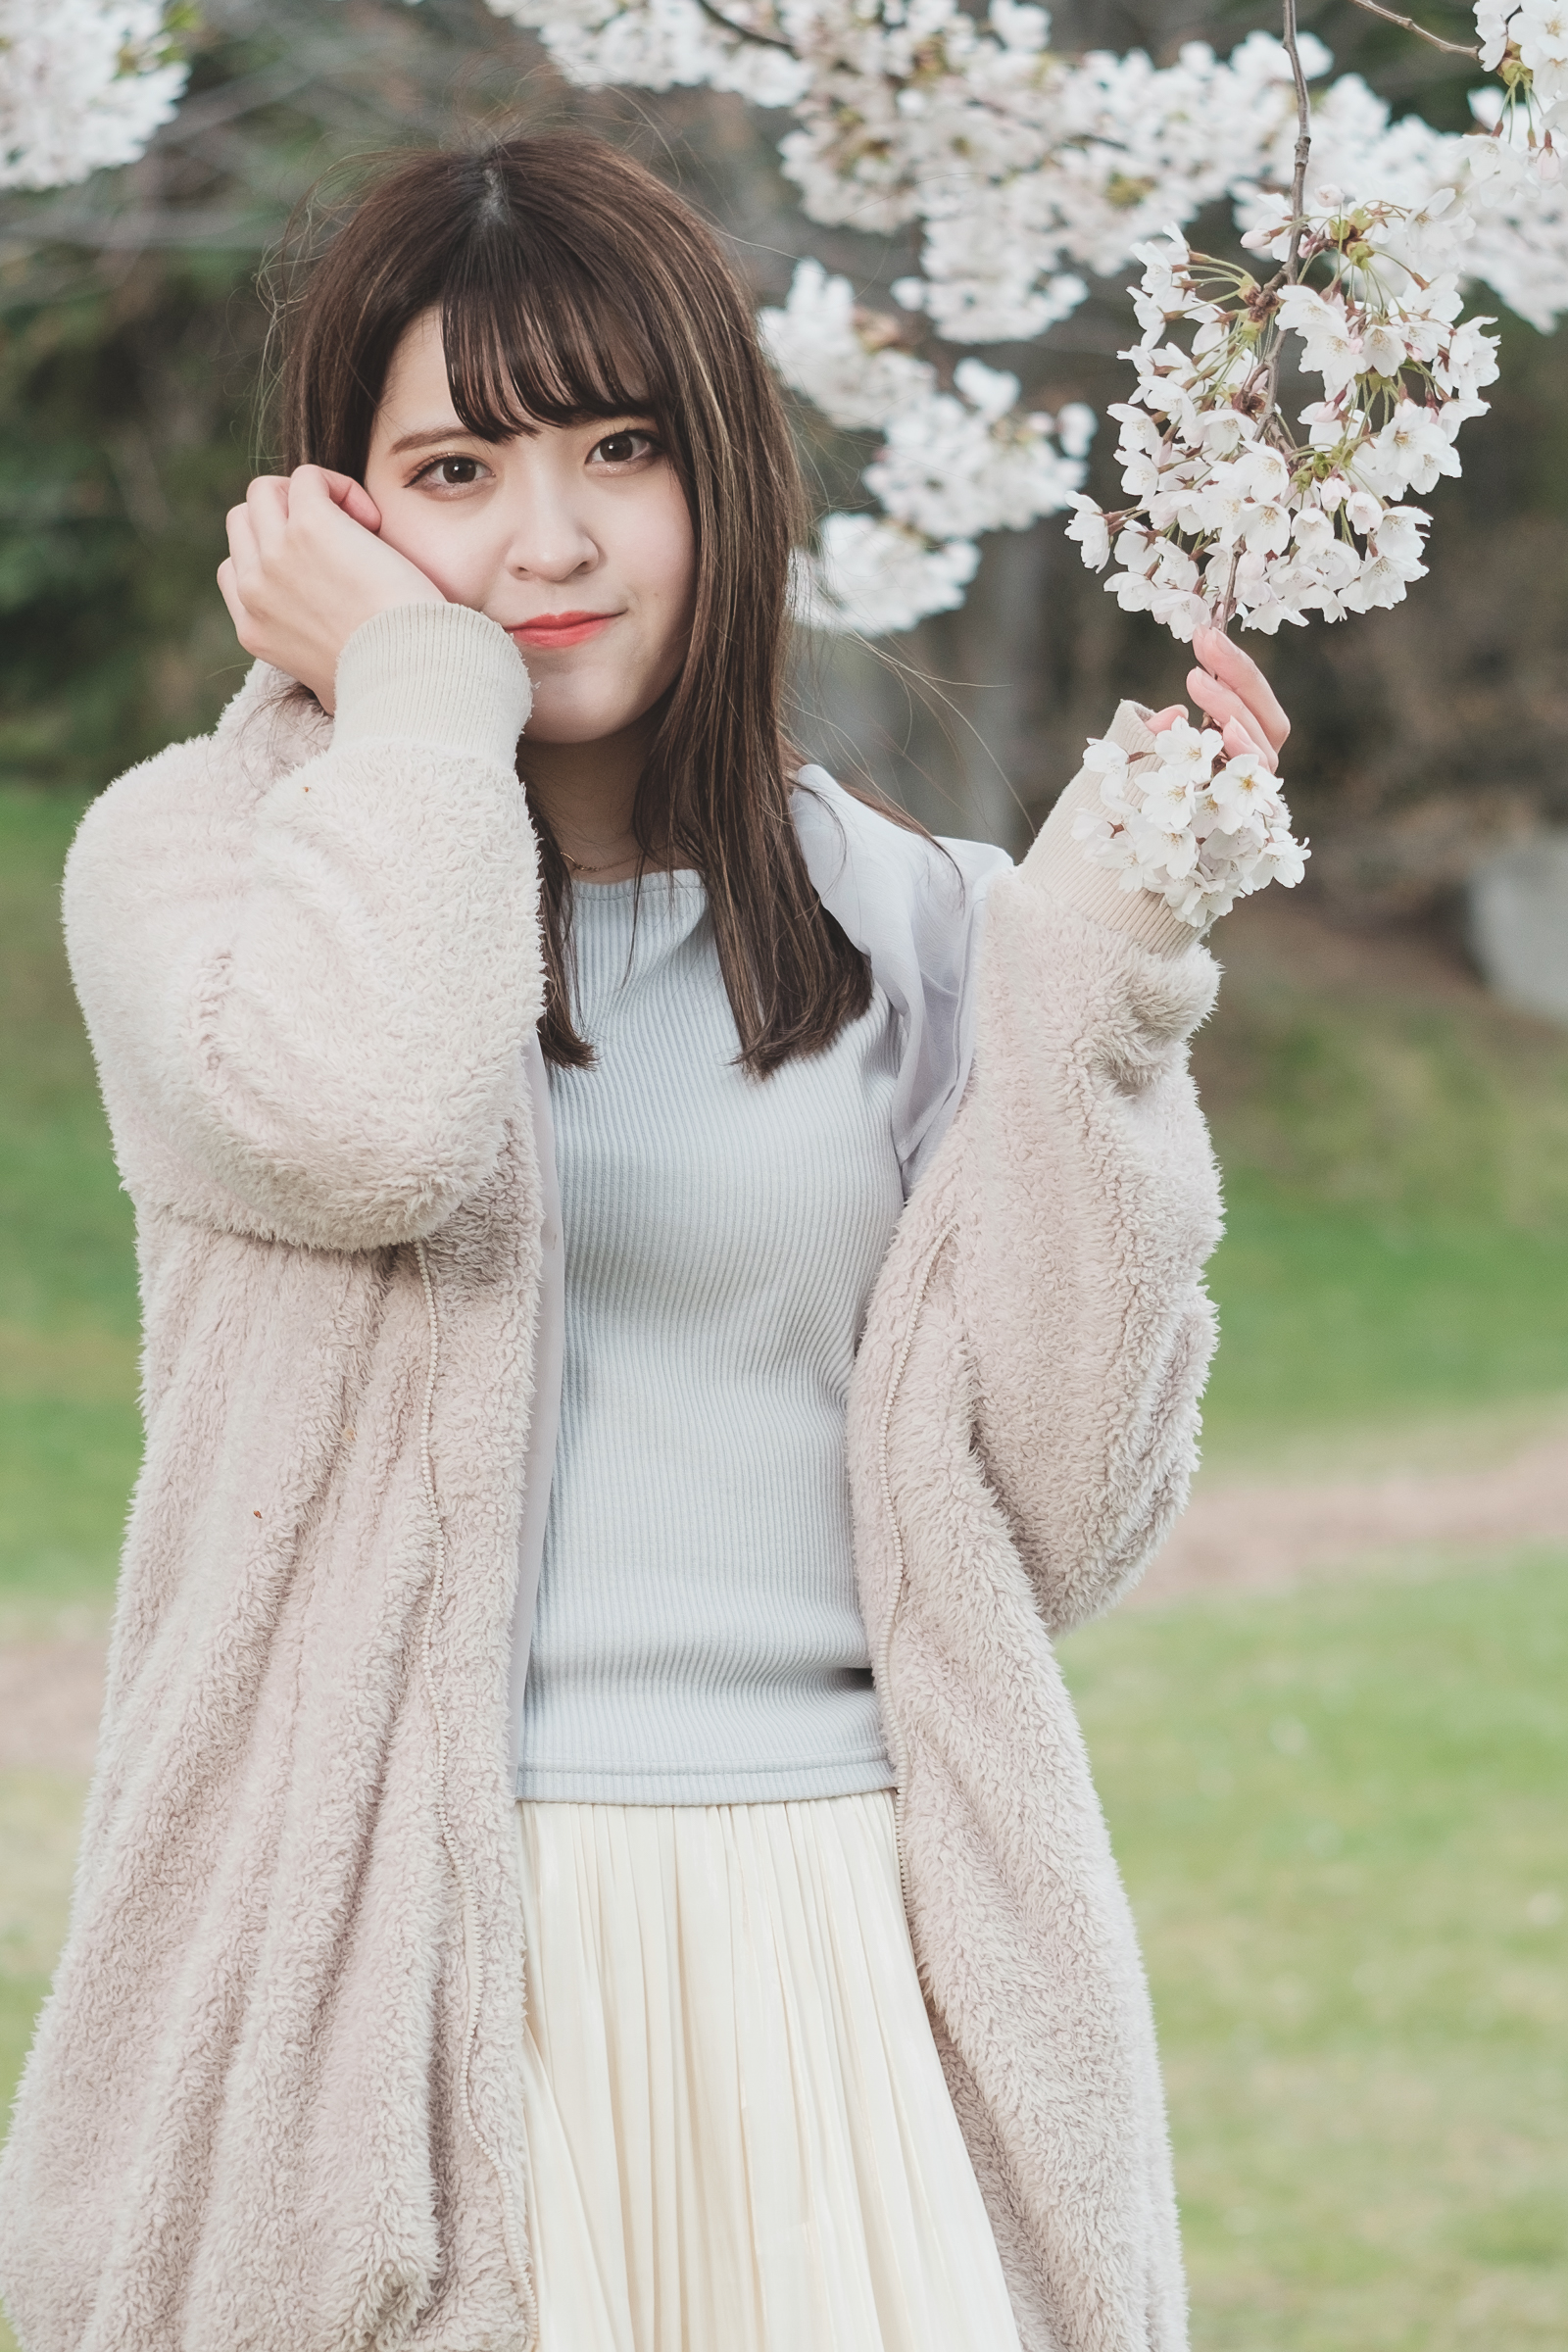 POPPING☆SMILE ゆうか ( 瀬川優香 ) | SMP 札幌モデルプロ「桜」撮影会 at 中島公園